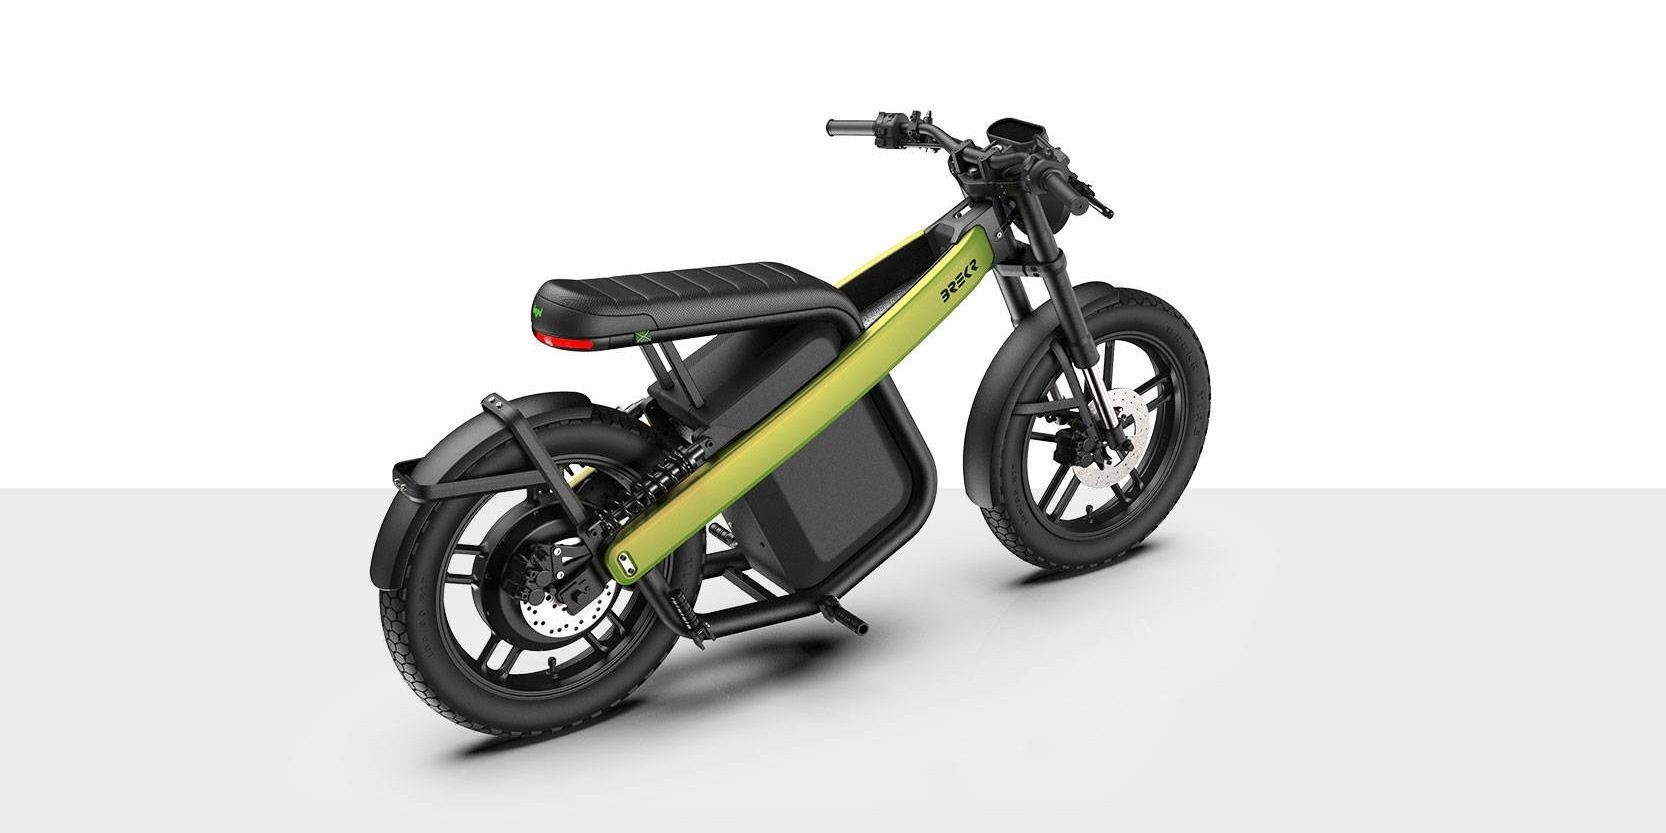 Brekr Model B electric moped offers dual batteries and 100 miles of range